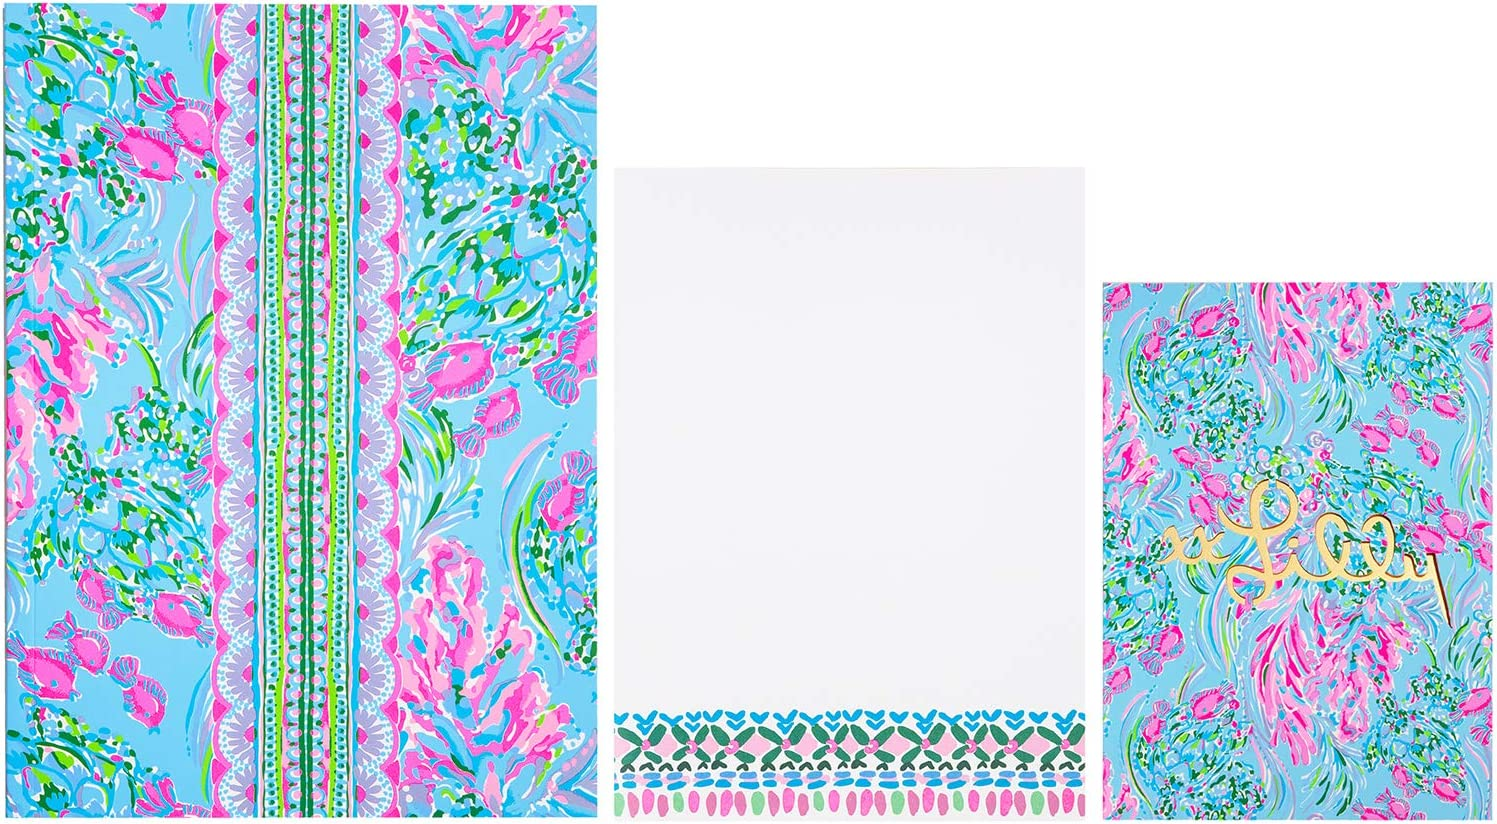 Lilly Pulitzer Notebook and Notepad Set of 3, Includes Large and Small Lined Notebooks and Medium Blank Desktop Notepad, Best Fishes